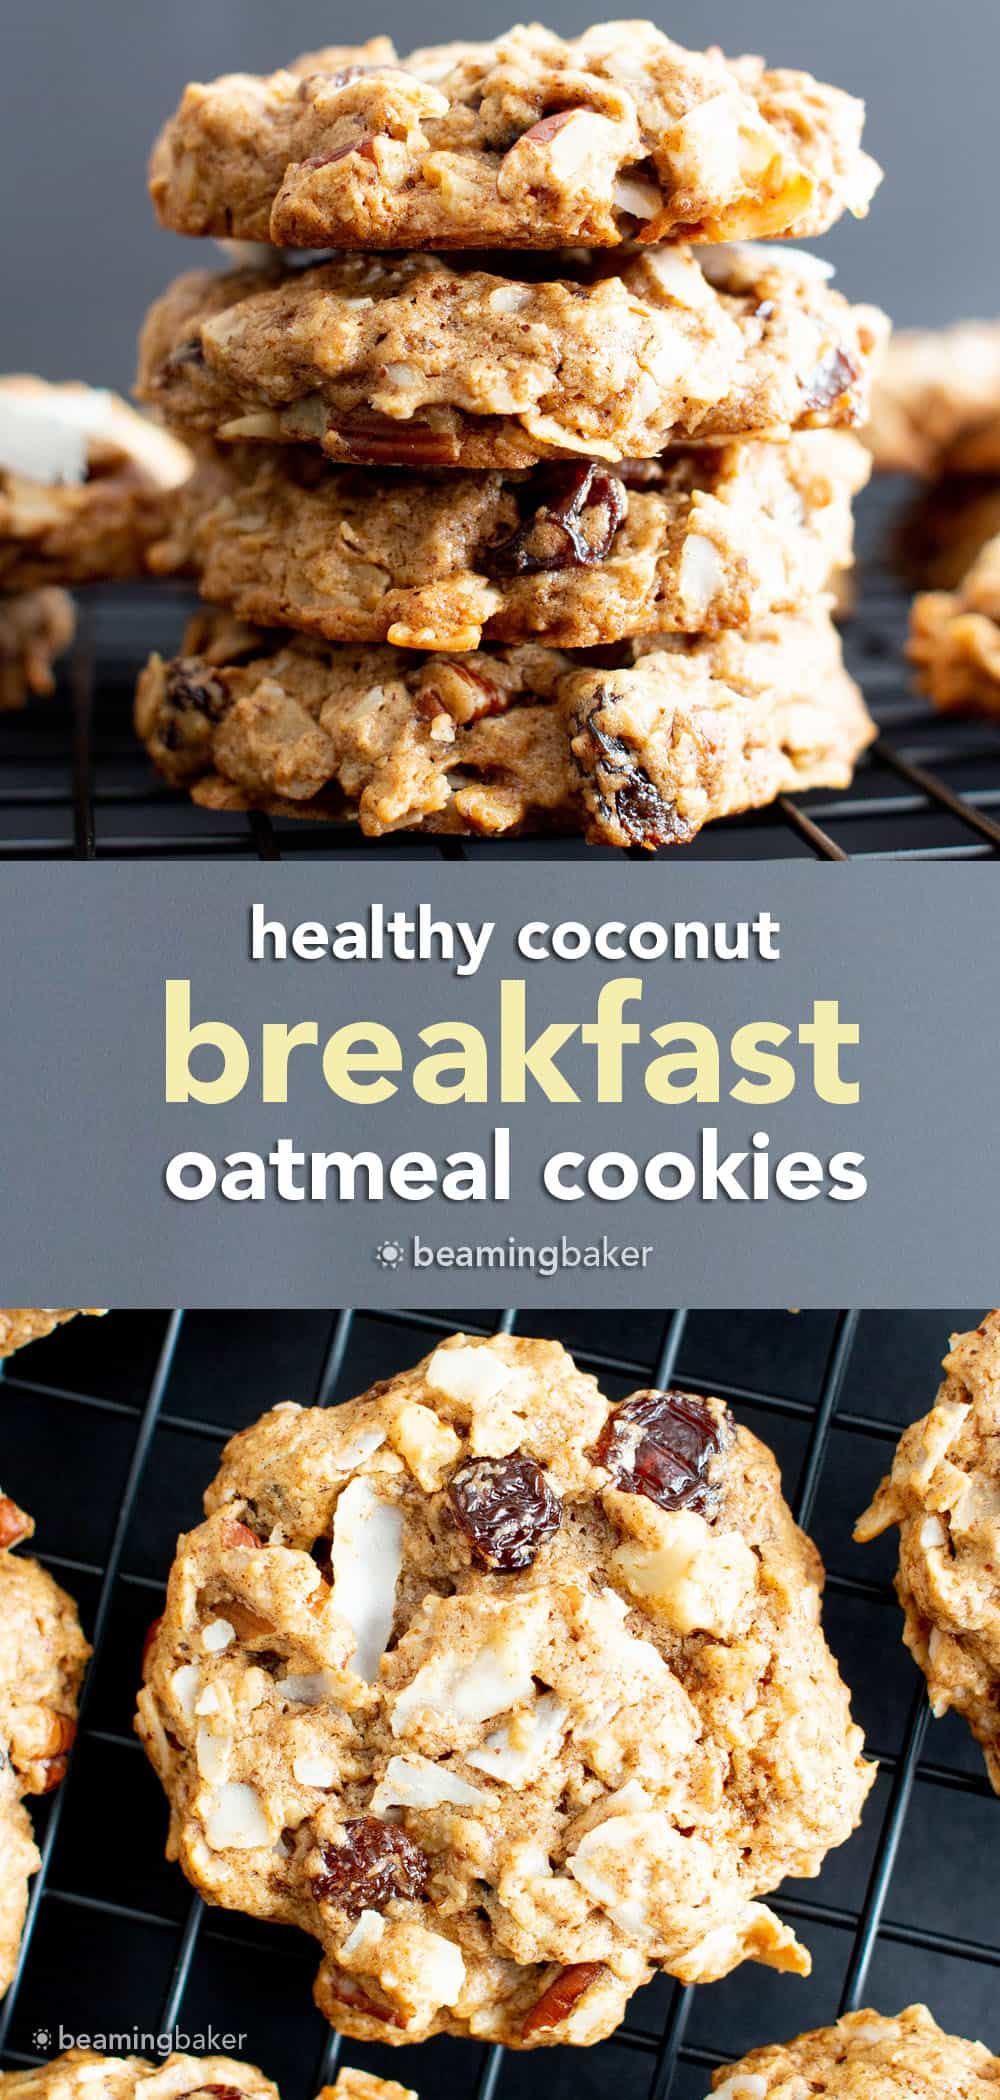 Healthy Oatmeal Coconut Cookies: delicious oatmeal coconut cookies with chewy & crispy goodness! Wonderfully healthy, vegan and gluten free. #healthy #coconut #oatmeal #cookies #vegan #glutenfree | Recipe at BeamingBaker.com